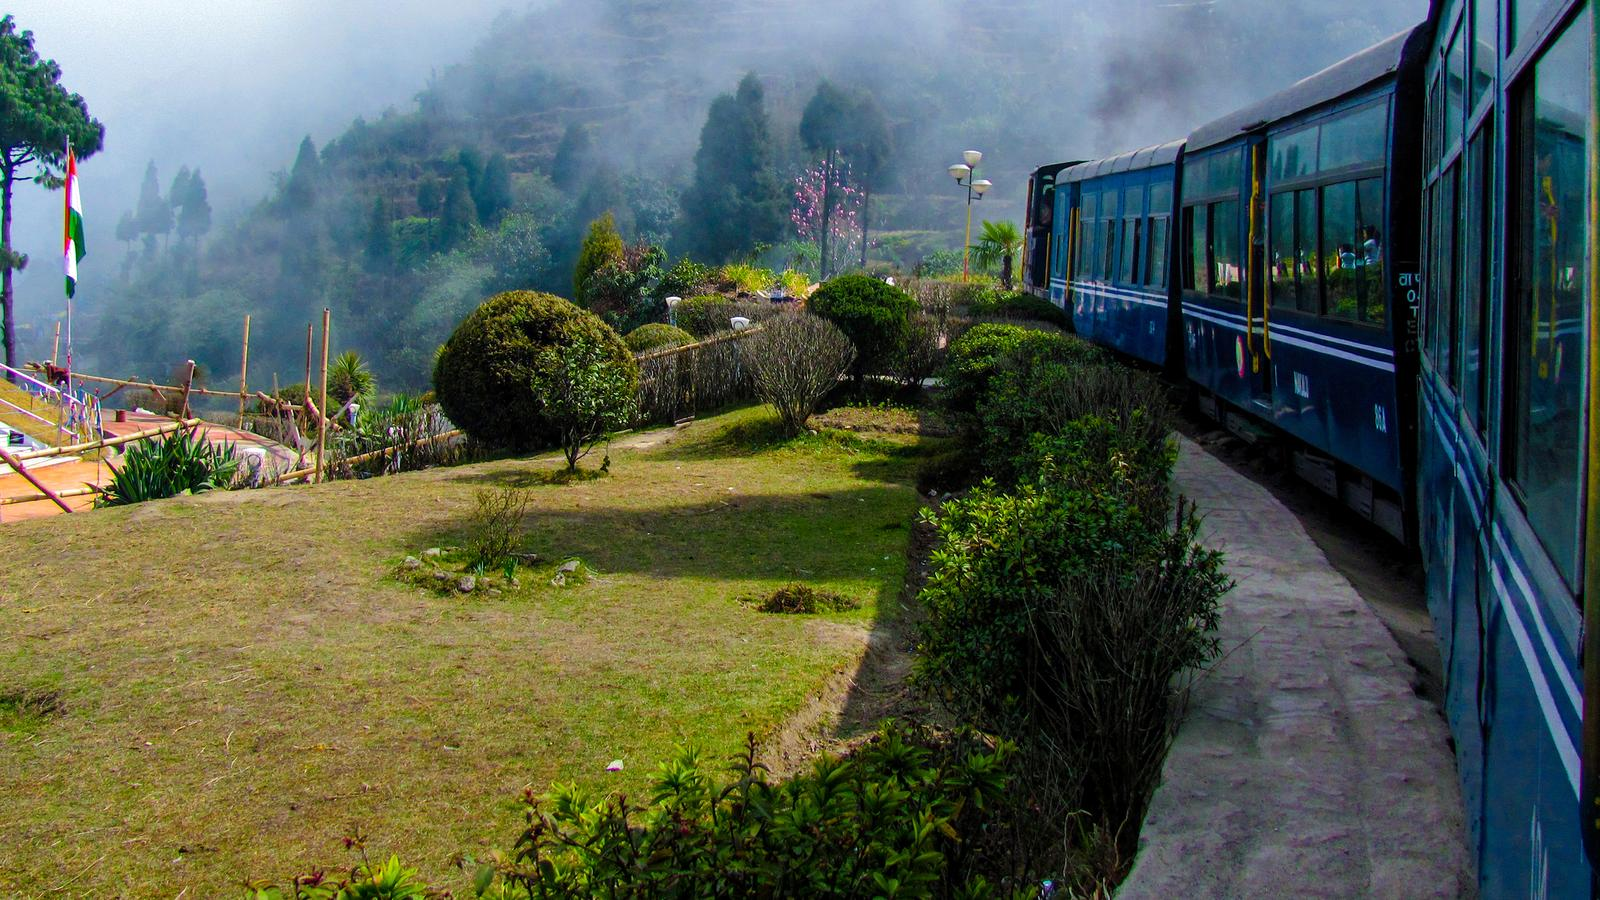 Top 10 Best Hill Stations in India